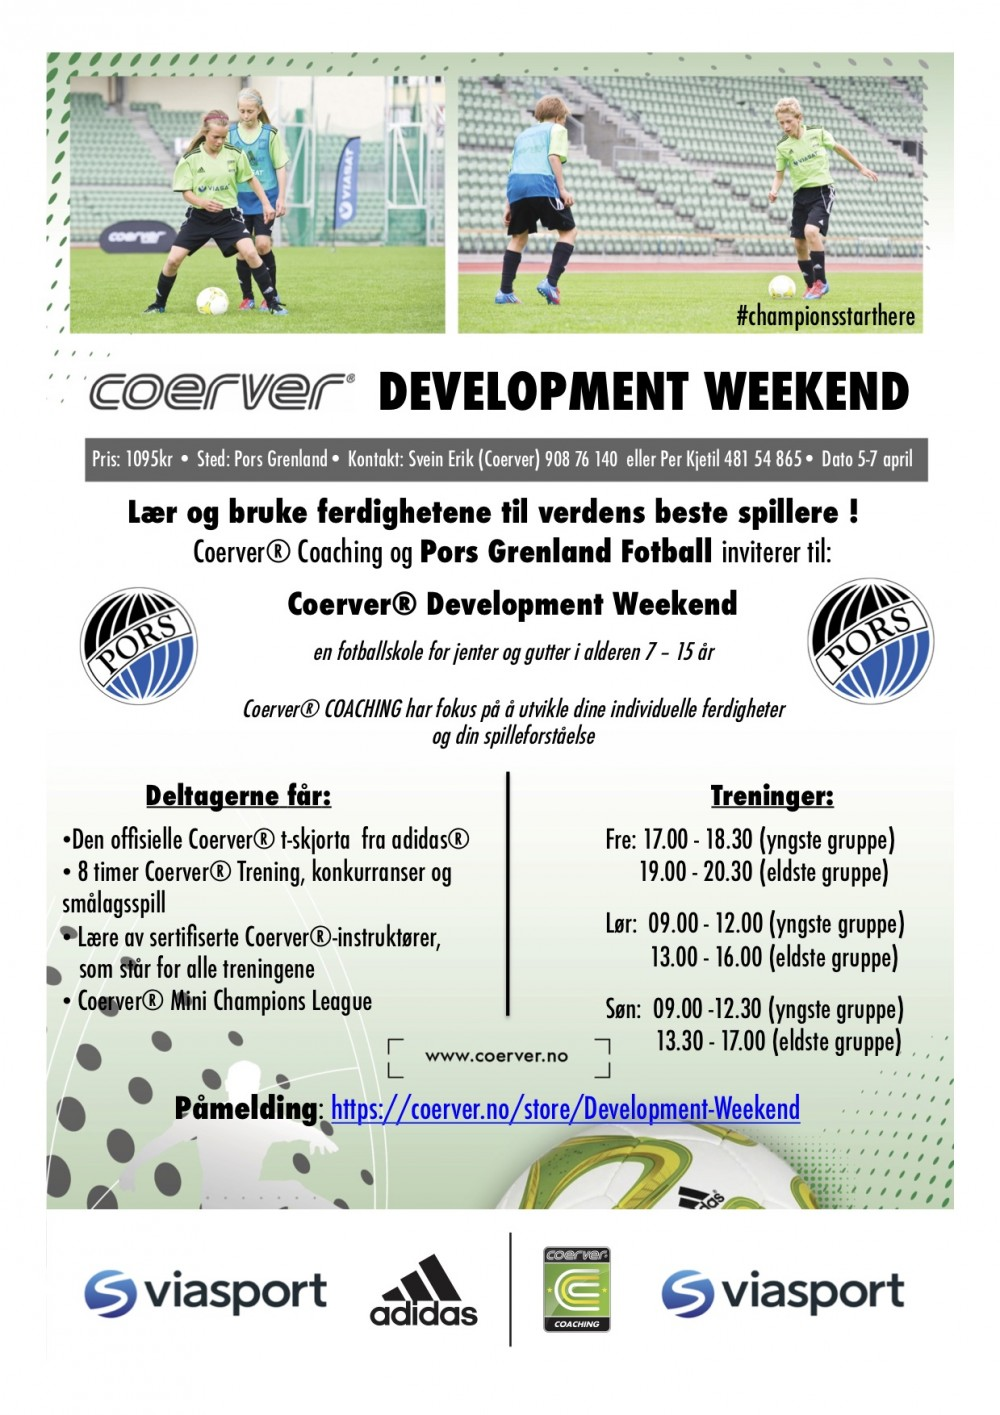 Coerver Development Weekend hos Pors Grenland Fotball 5-7 april